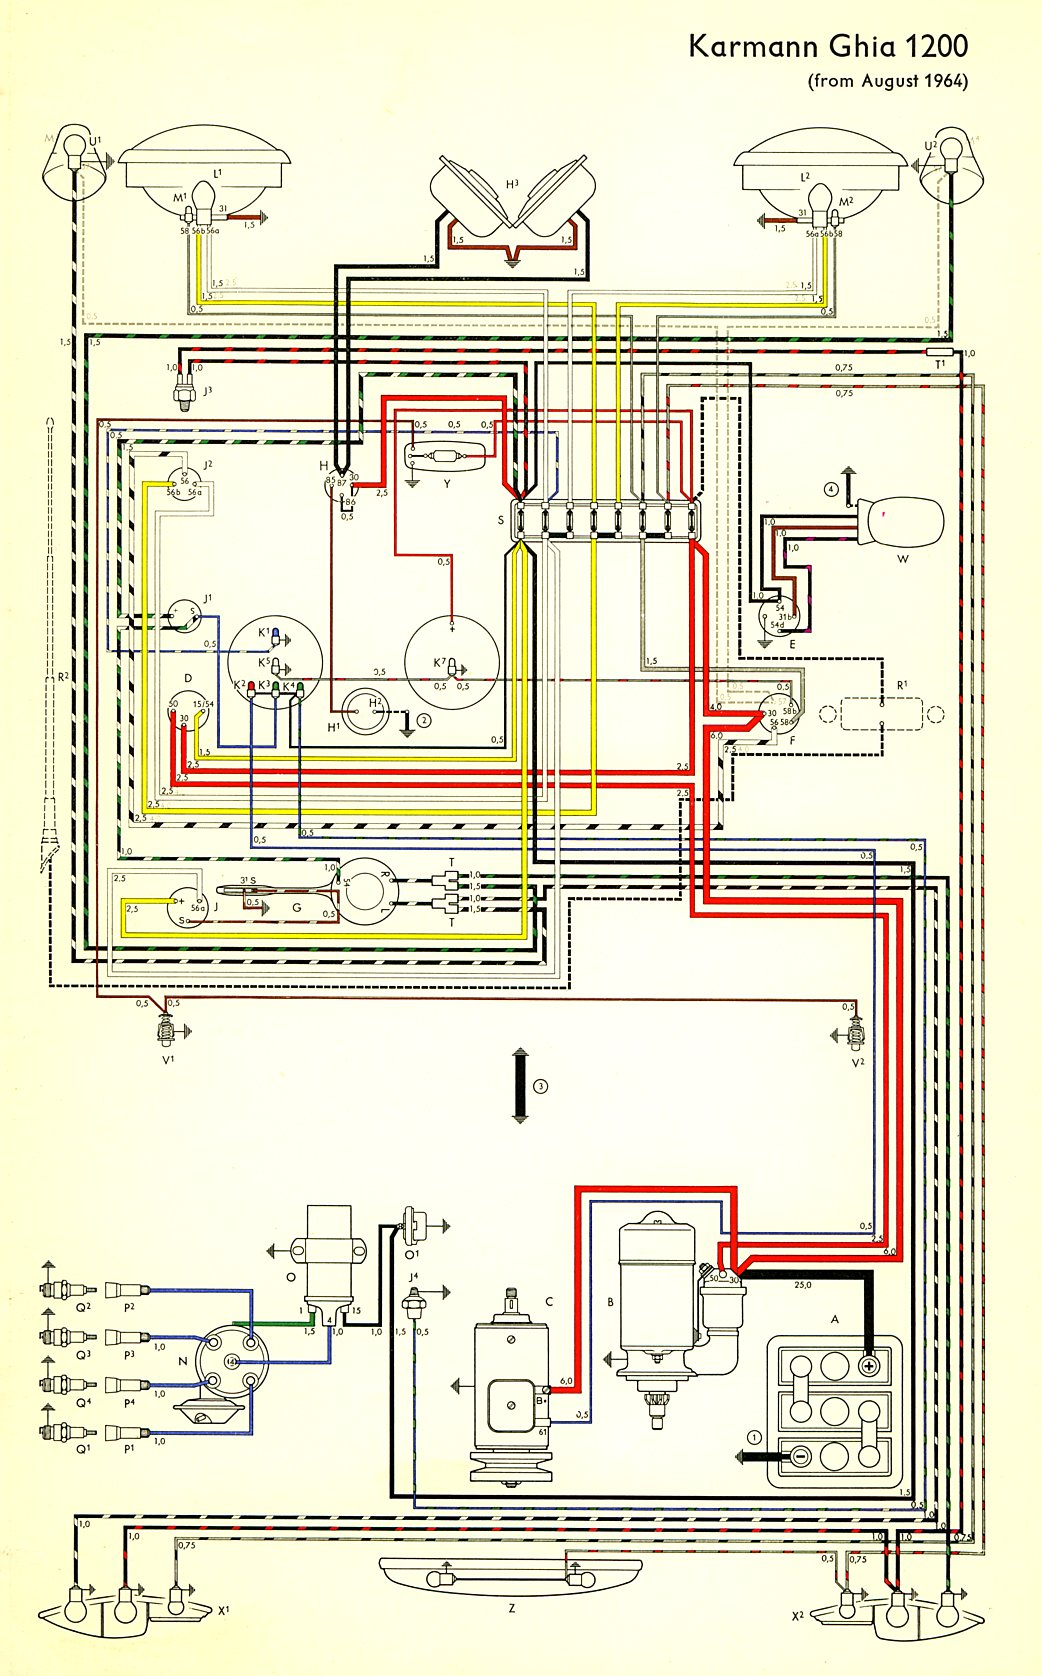 1970 vw karmann ghia wiring diagram thesamba.com :: karmann ghia wiring diagrams #3